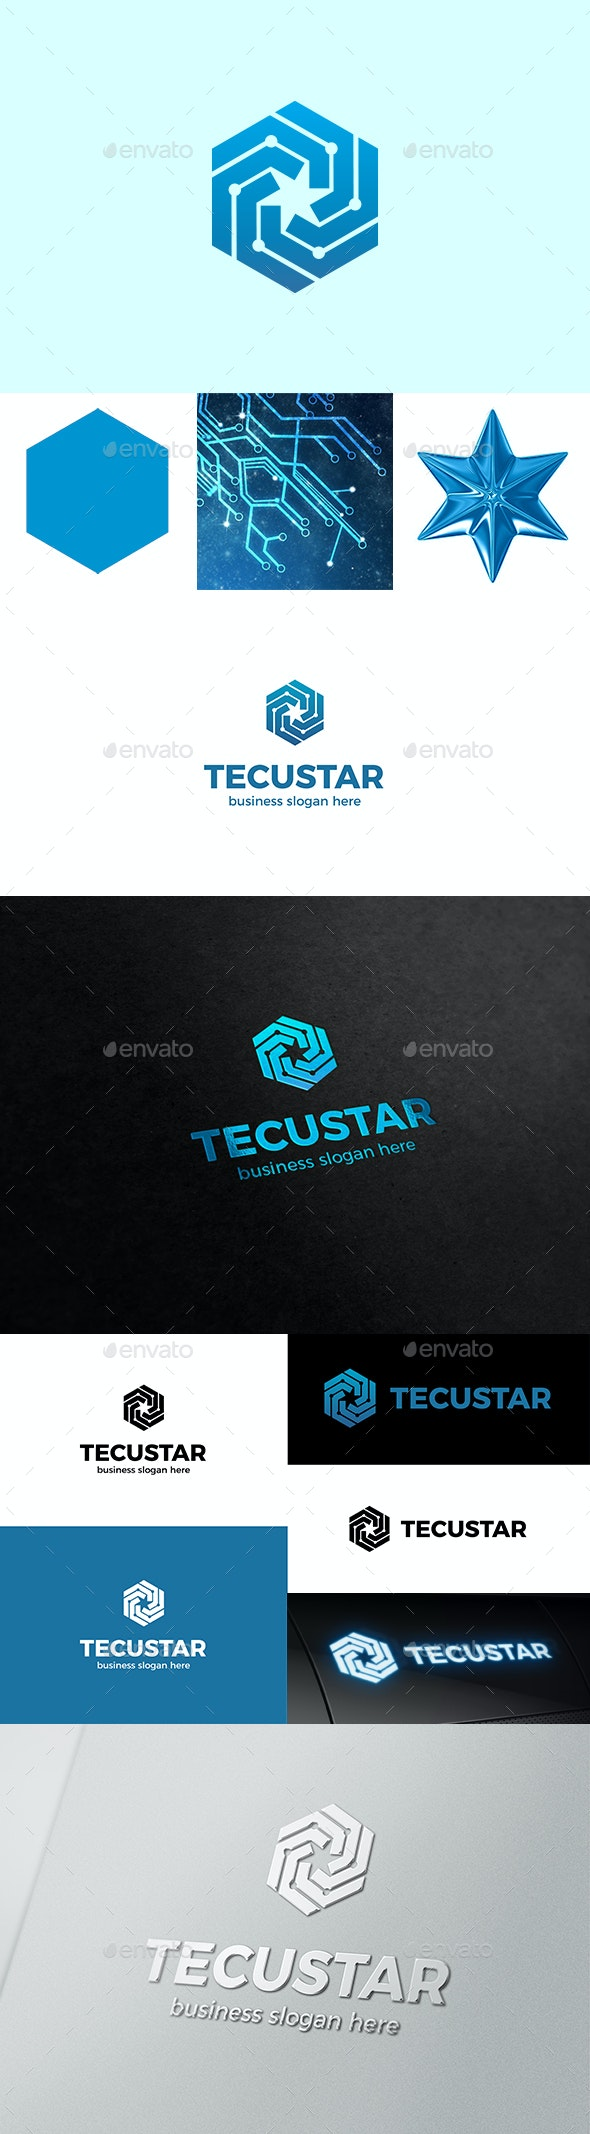 Tech Hexagon and Star Form Inside - Vector Abstract